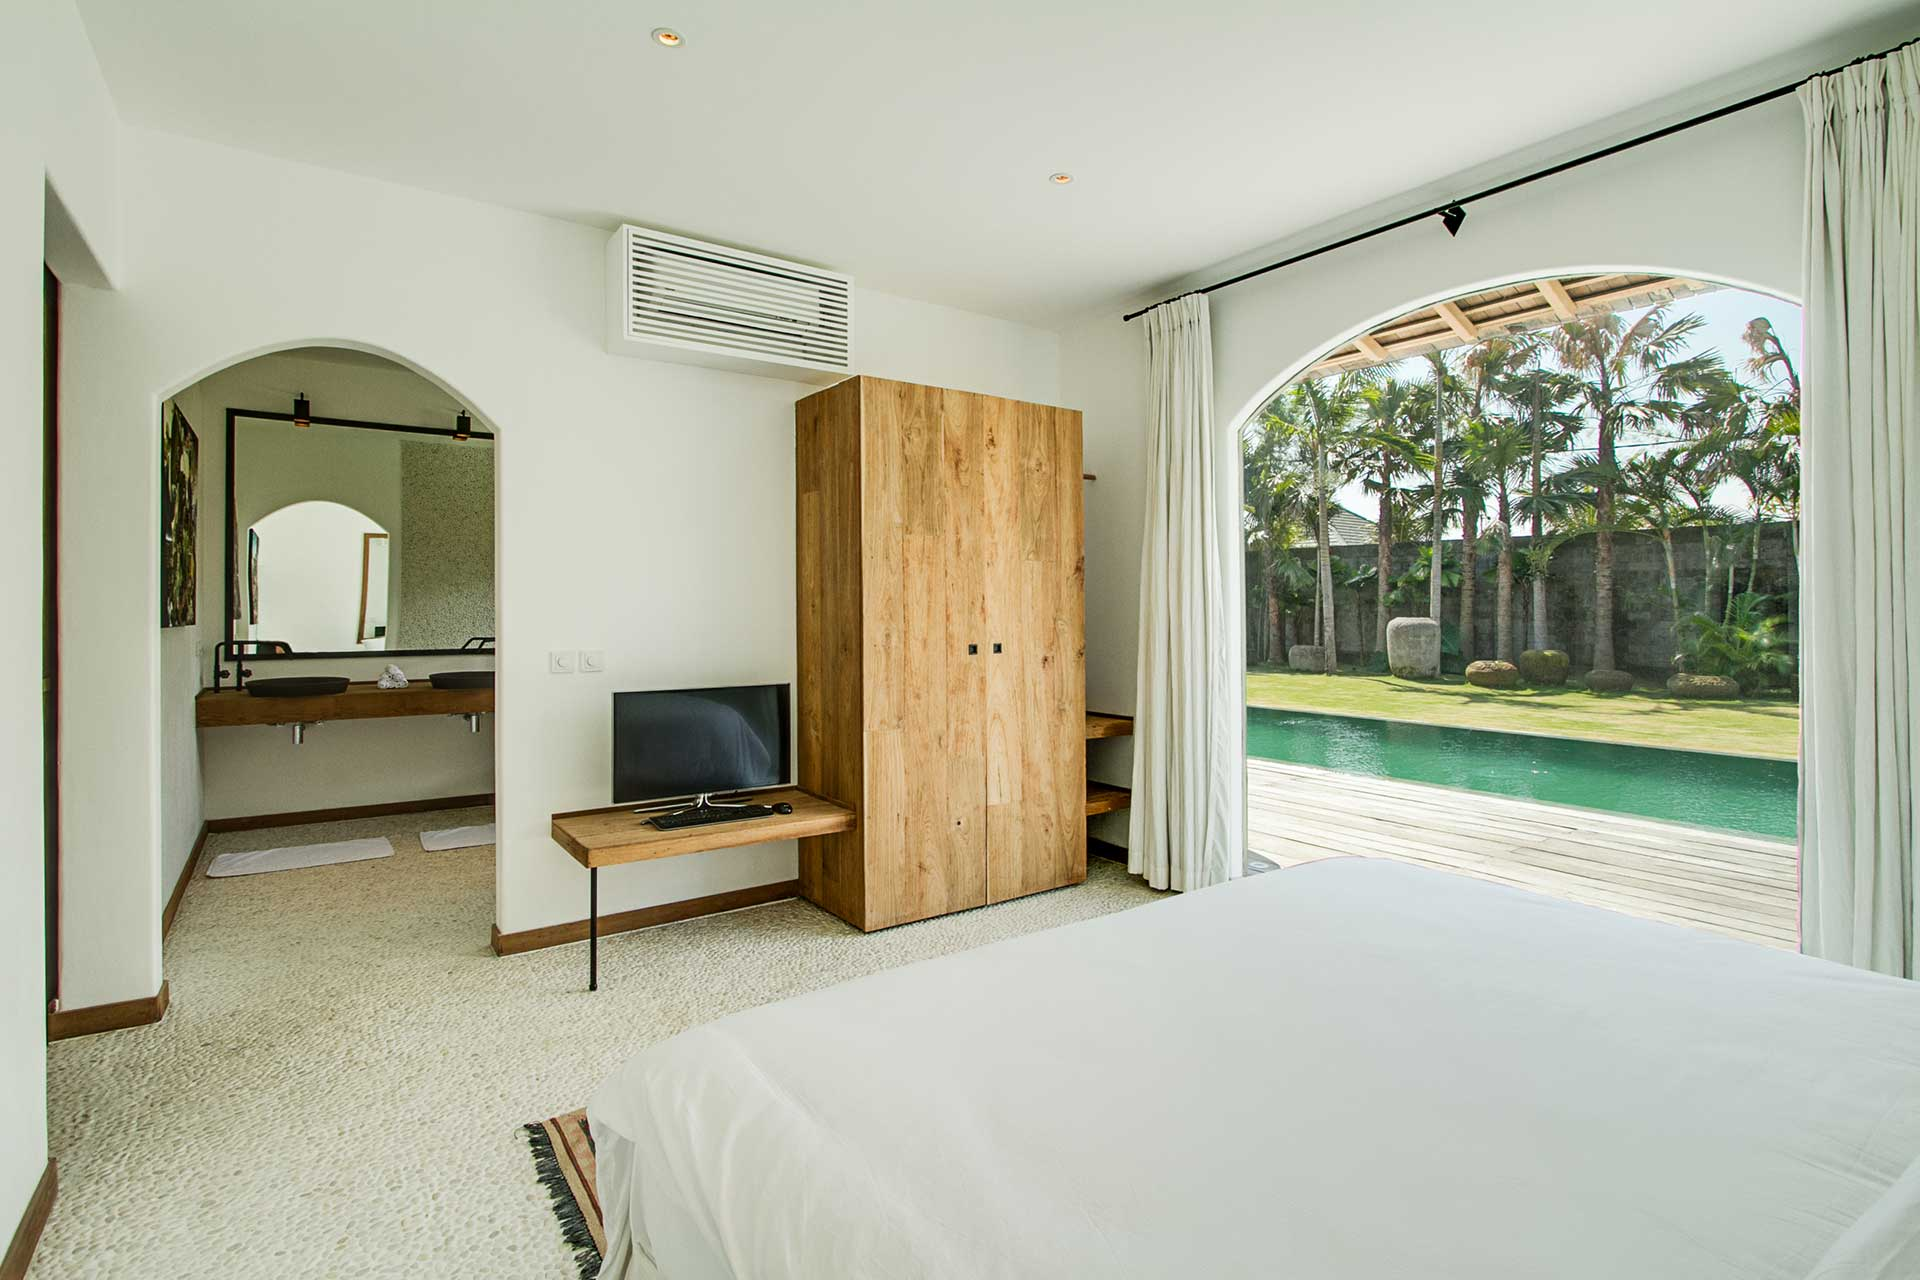 Main Villa Pool View Room, plenty of closet space and a private bathroom